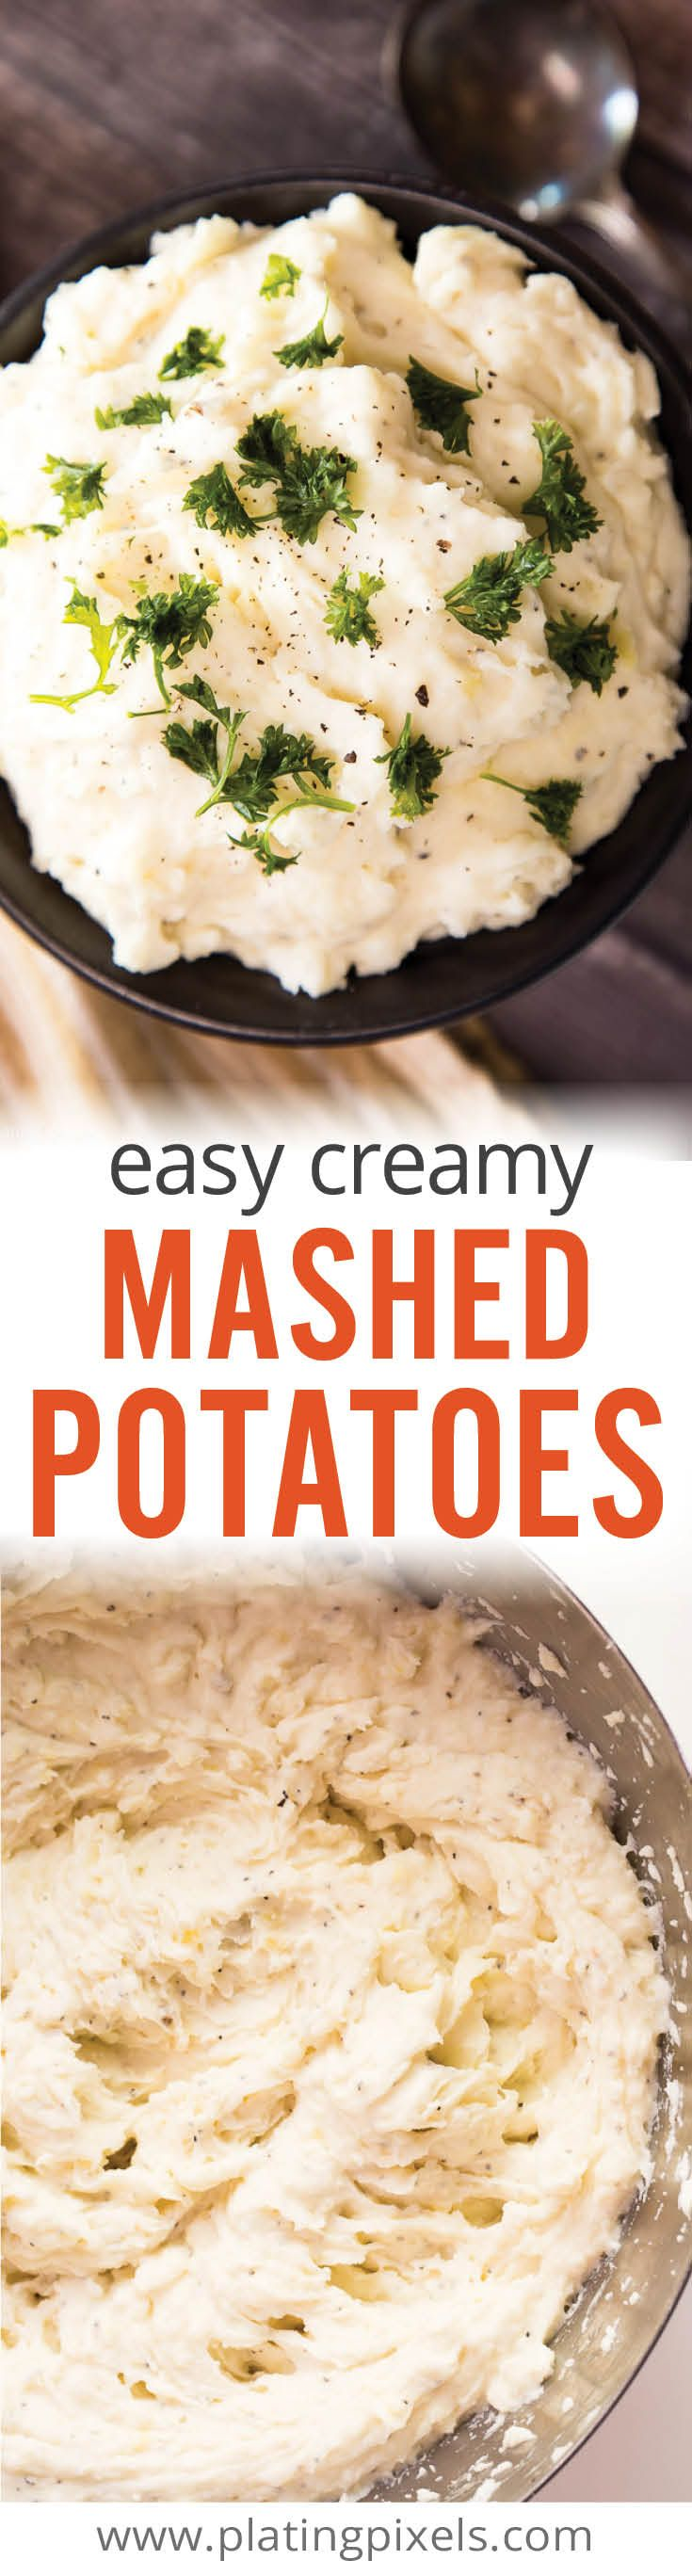 1000+ ideas about Creamy Mashed Potatoes on Pinterest ...